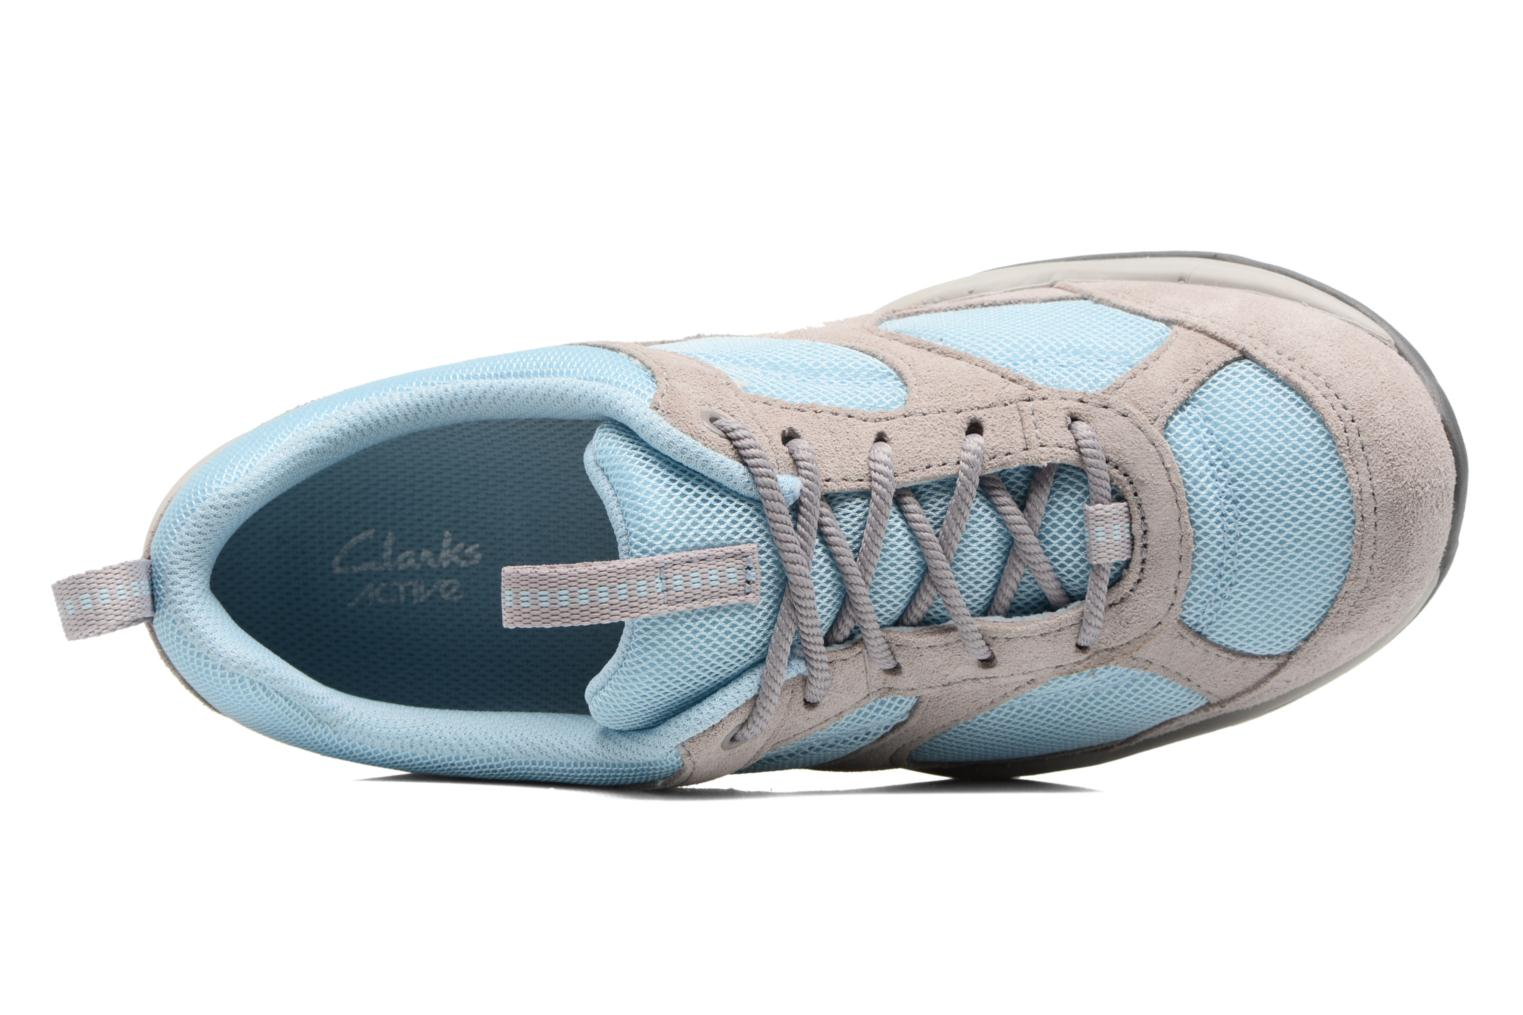 Inwalk Air Light blue